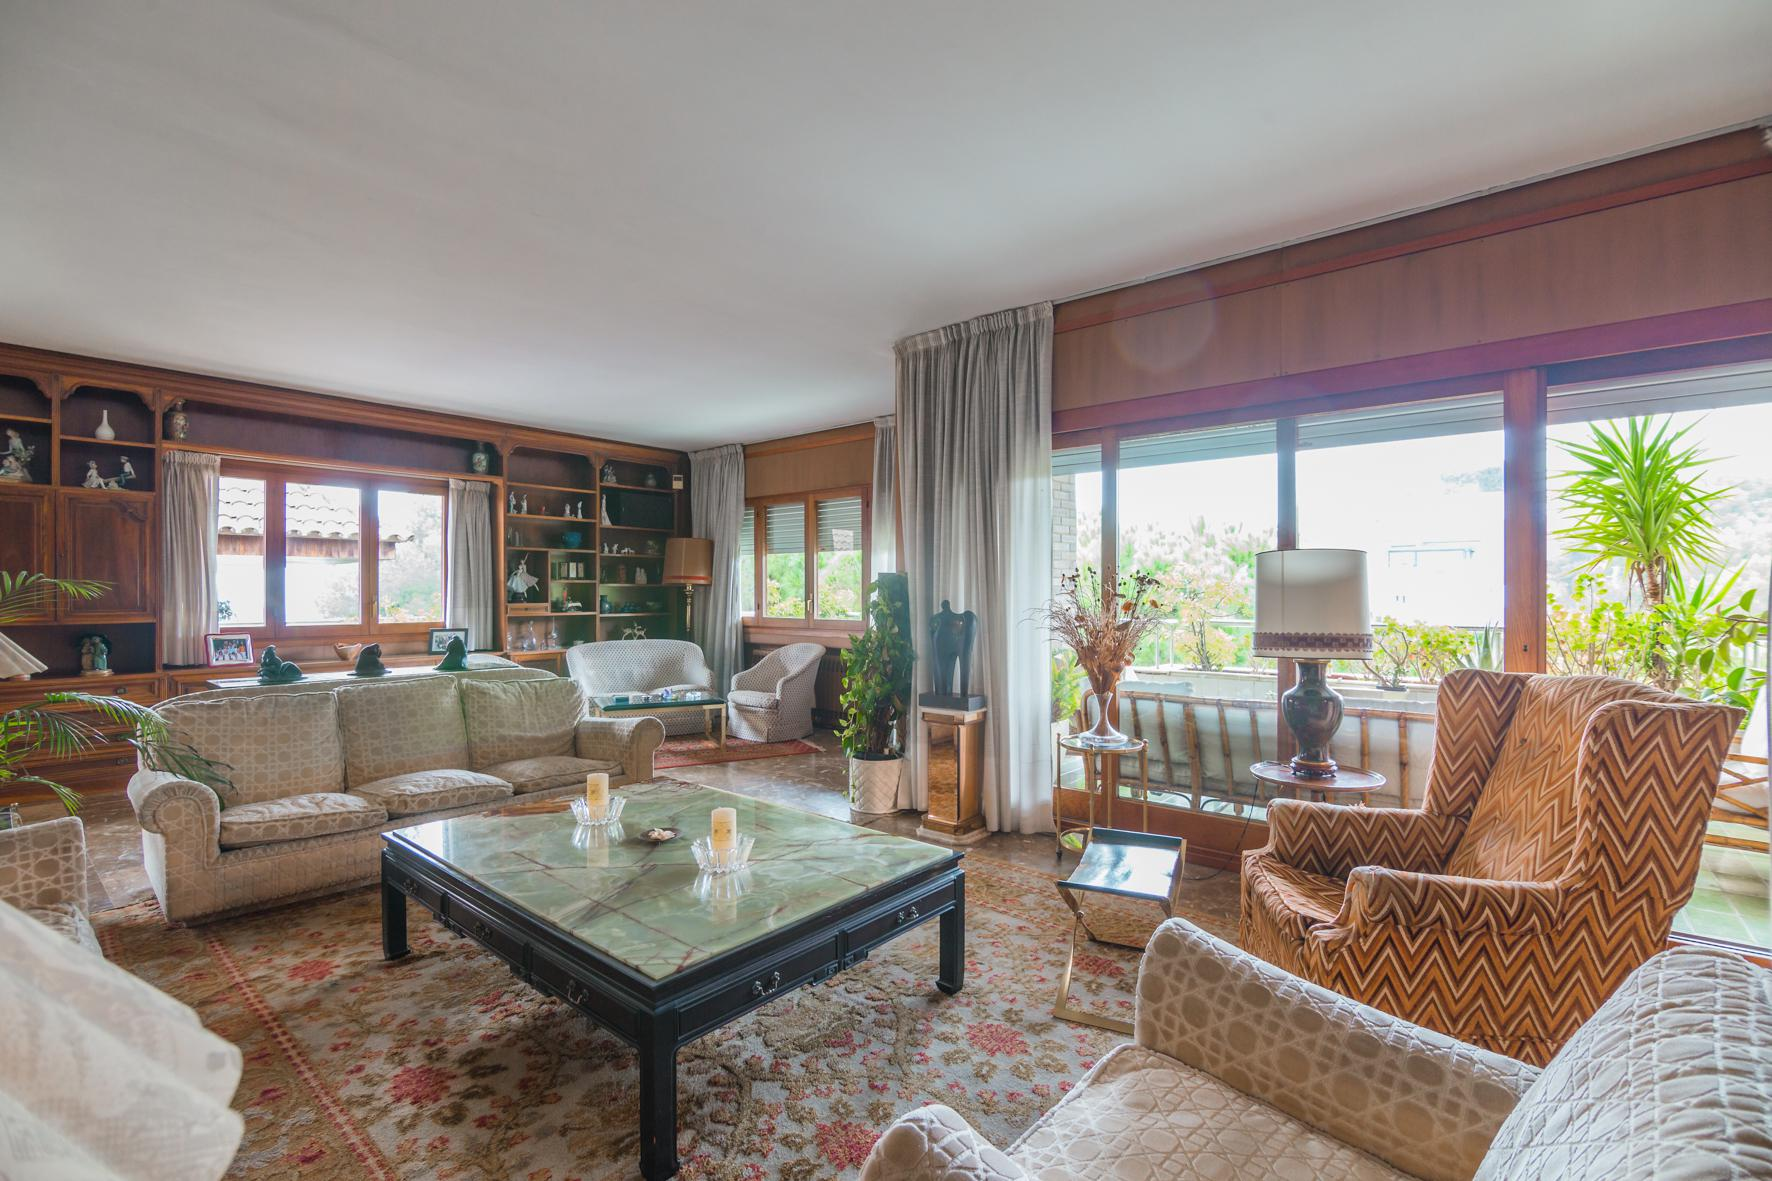 244103 Penthouse for sale in Les Corts, Pedralbes 5